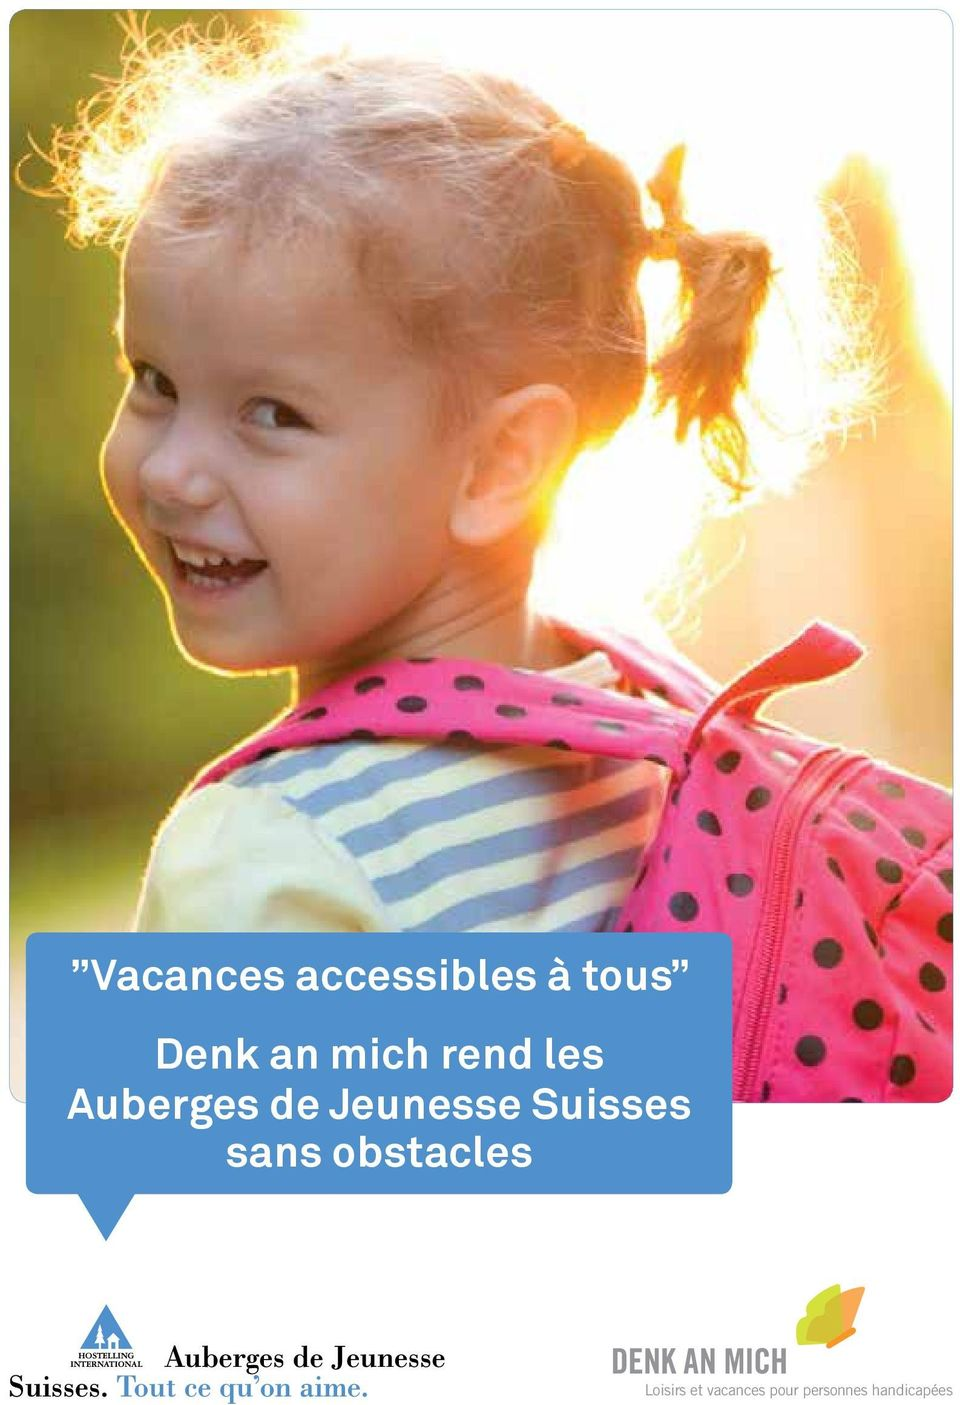 Jeunesse Suisses sans obstacles